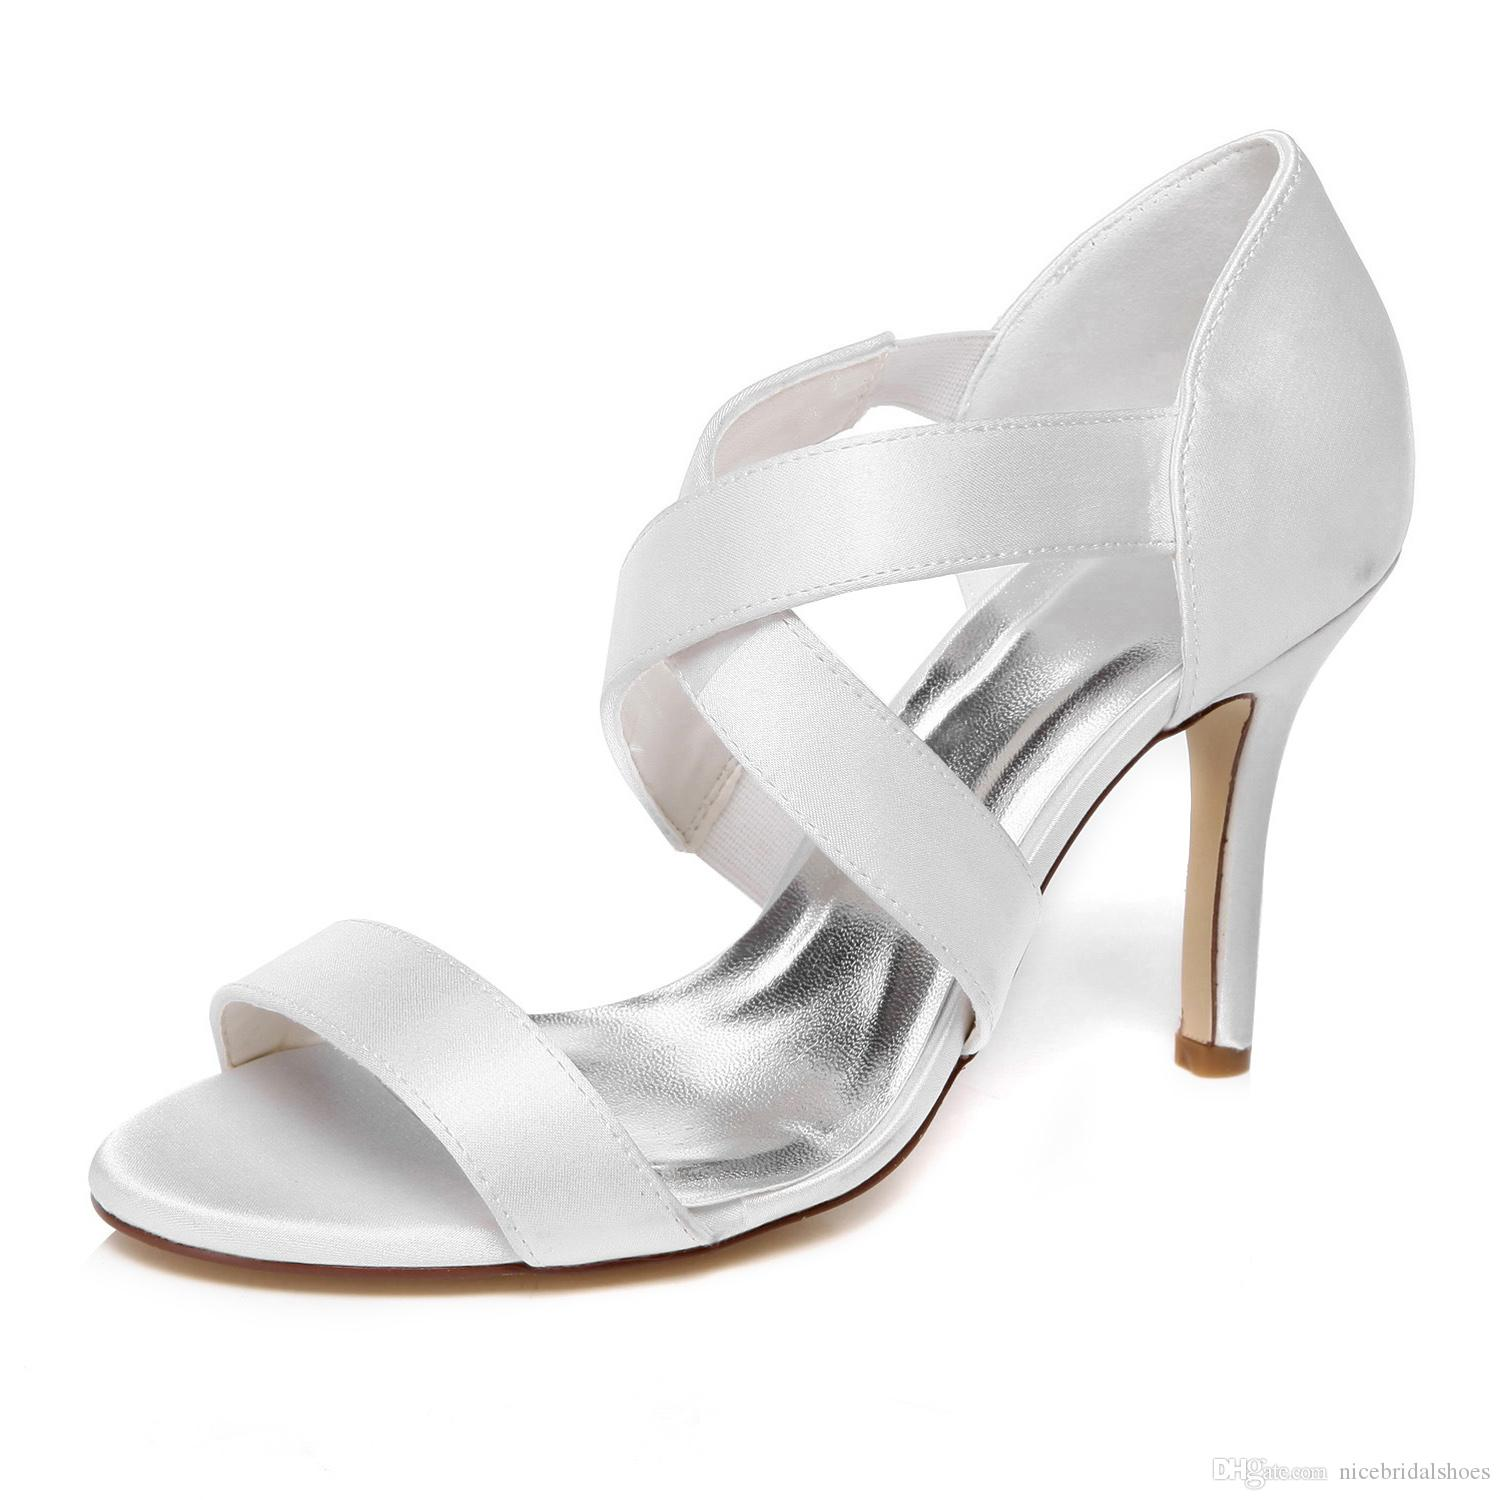 2016 New Plain Dyeable Ivory Color Sandal Bridal Shoes Wedding Dress Handmade Evening Prom Party Size 42 Flat For